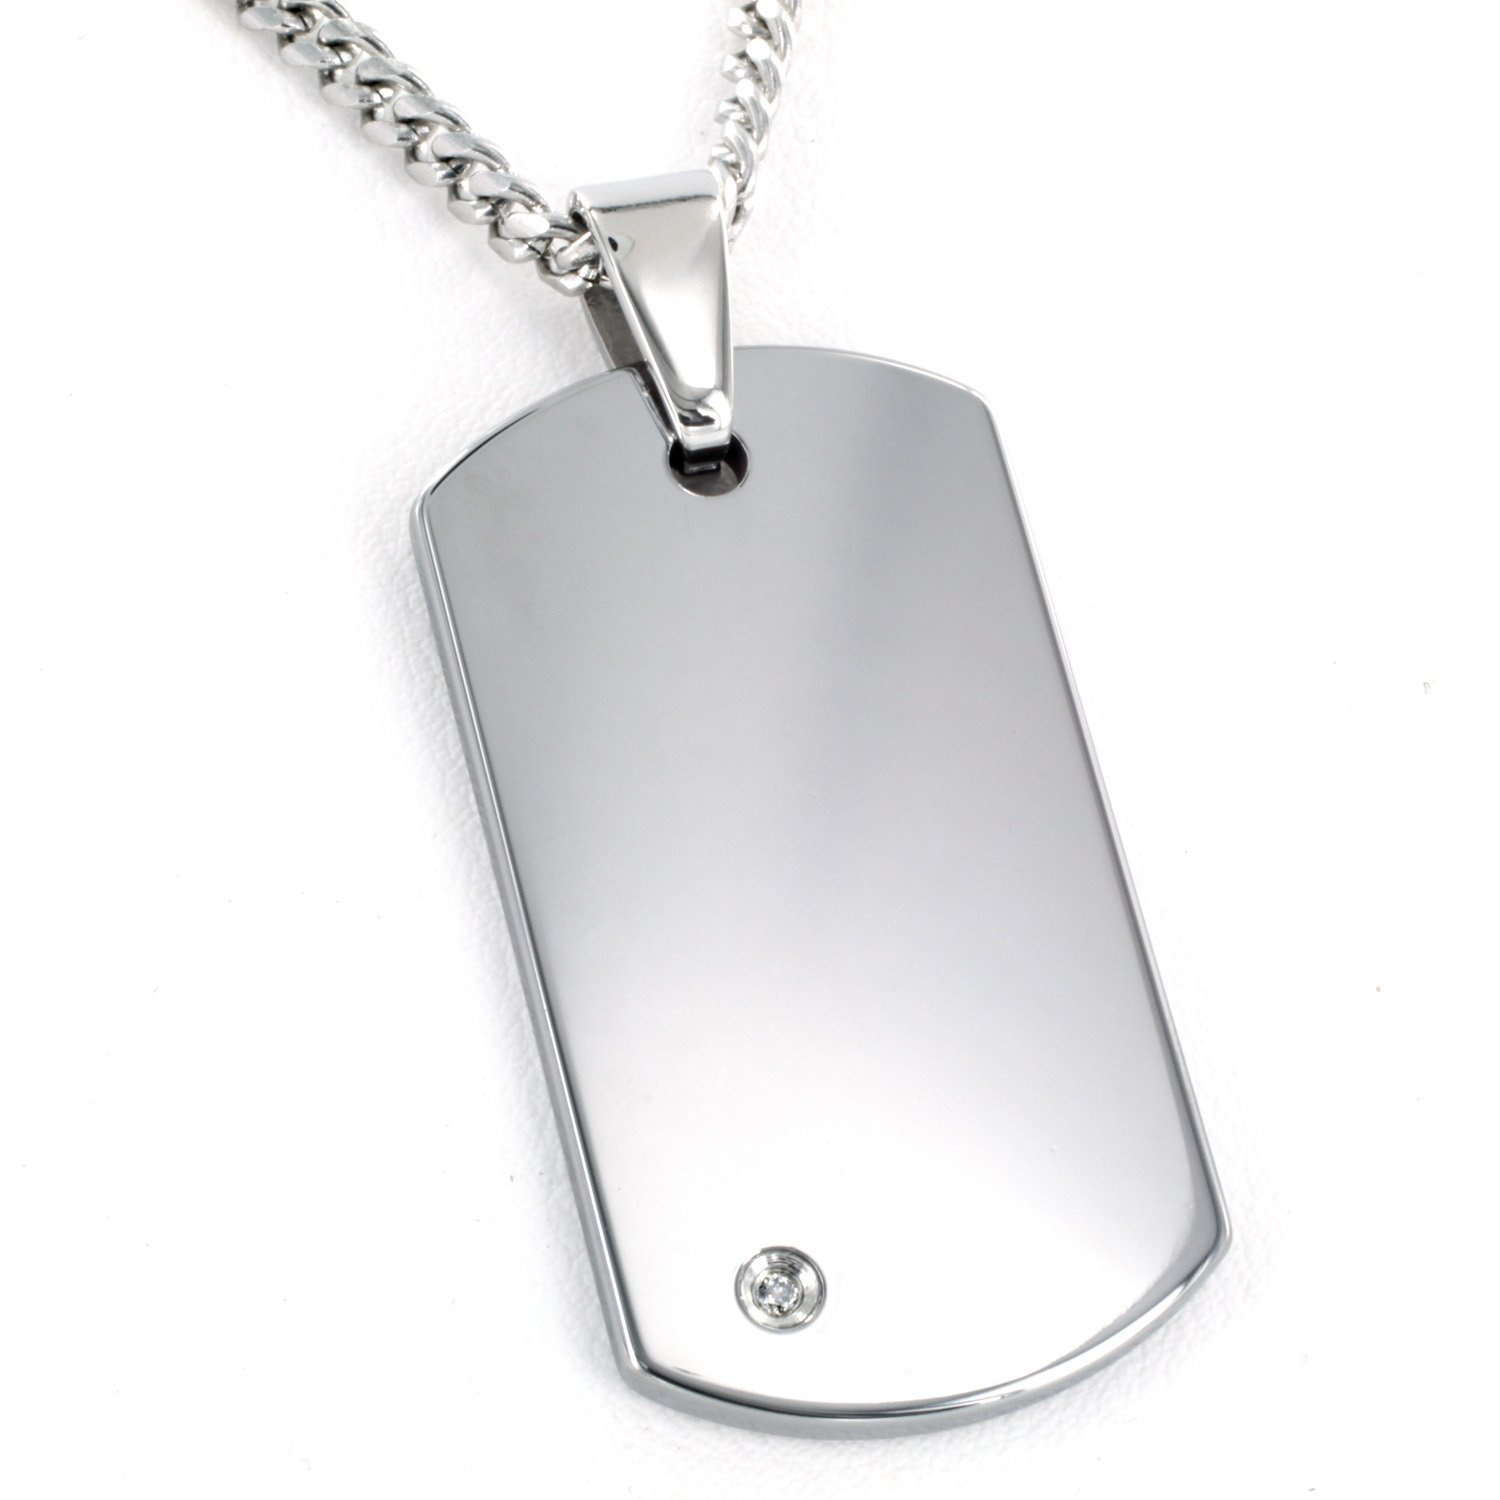 img necklace quality tungsten stainless steel pendant high products handcuff chip diamond love